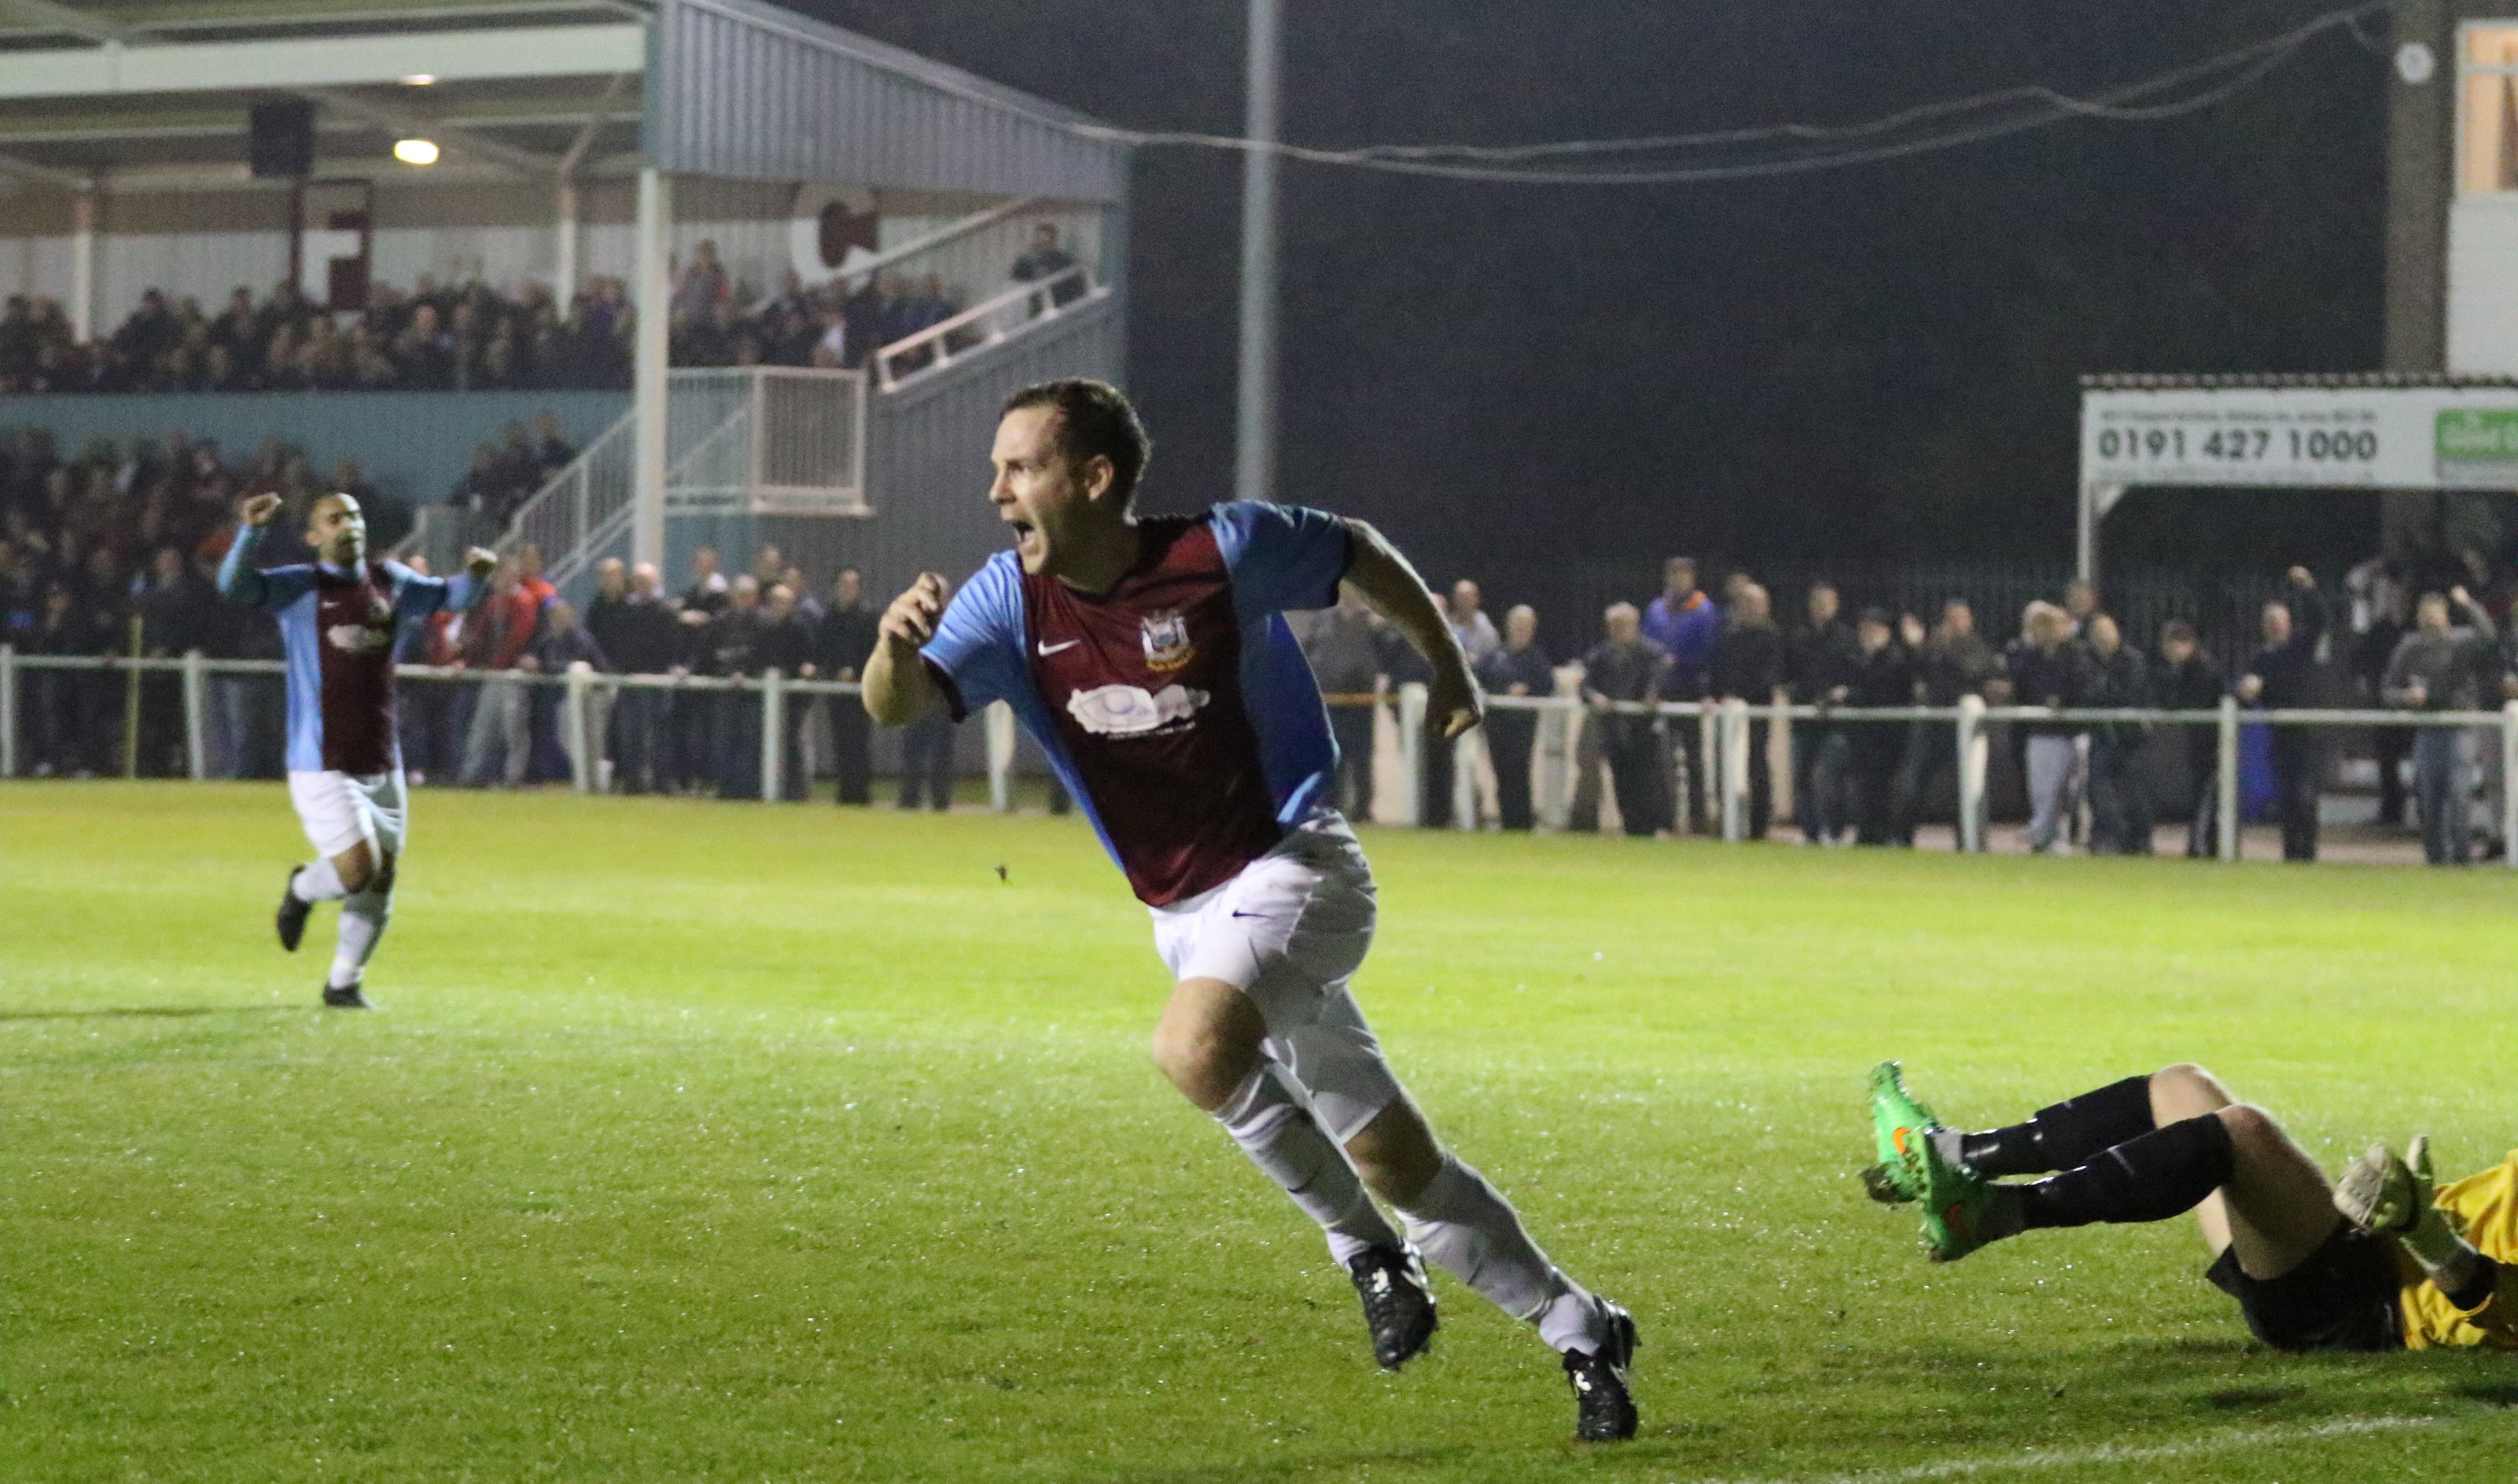 HIGHLIGHTS: South Shields 2-0 Ryhope CW